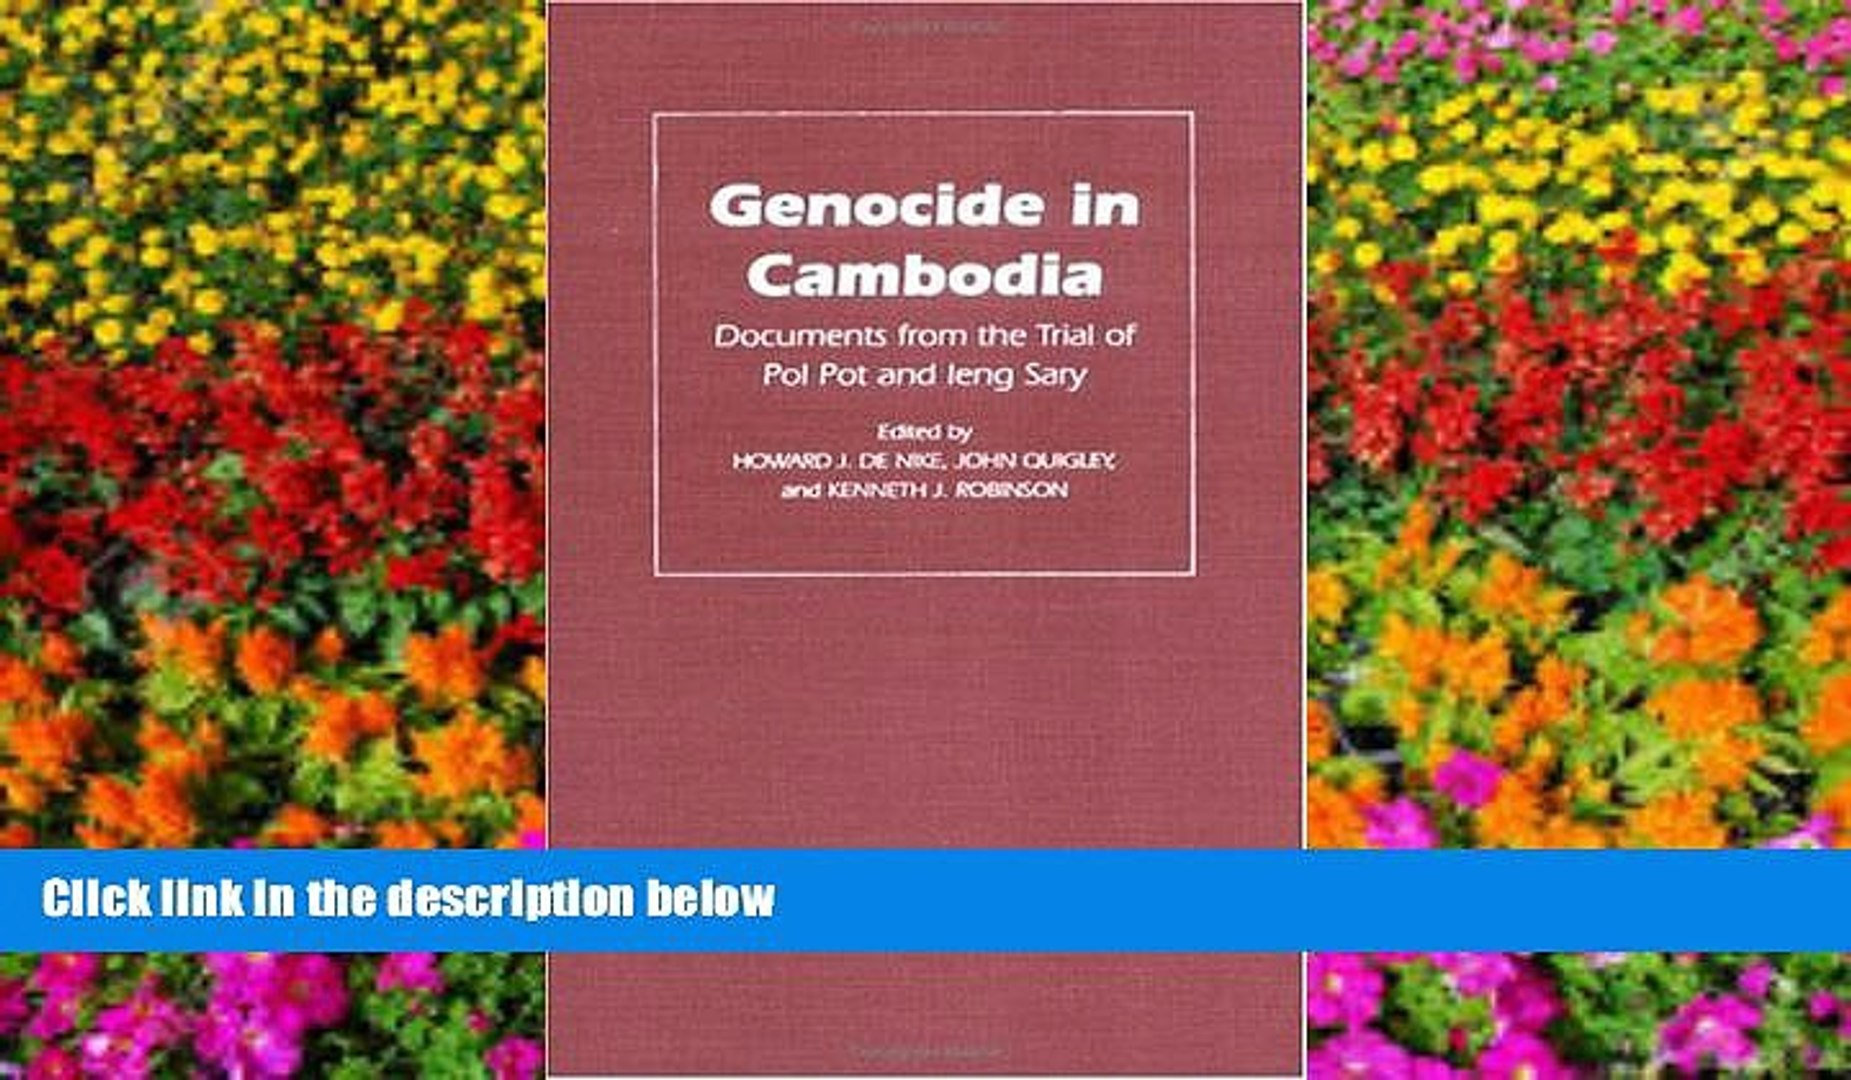 Documents from the Trial of Pol Pot and Ieng Sary Genocide in Cambodia